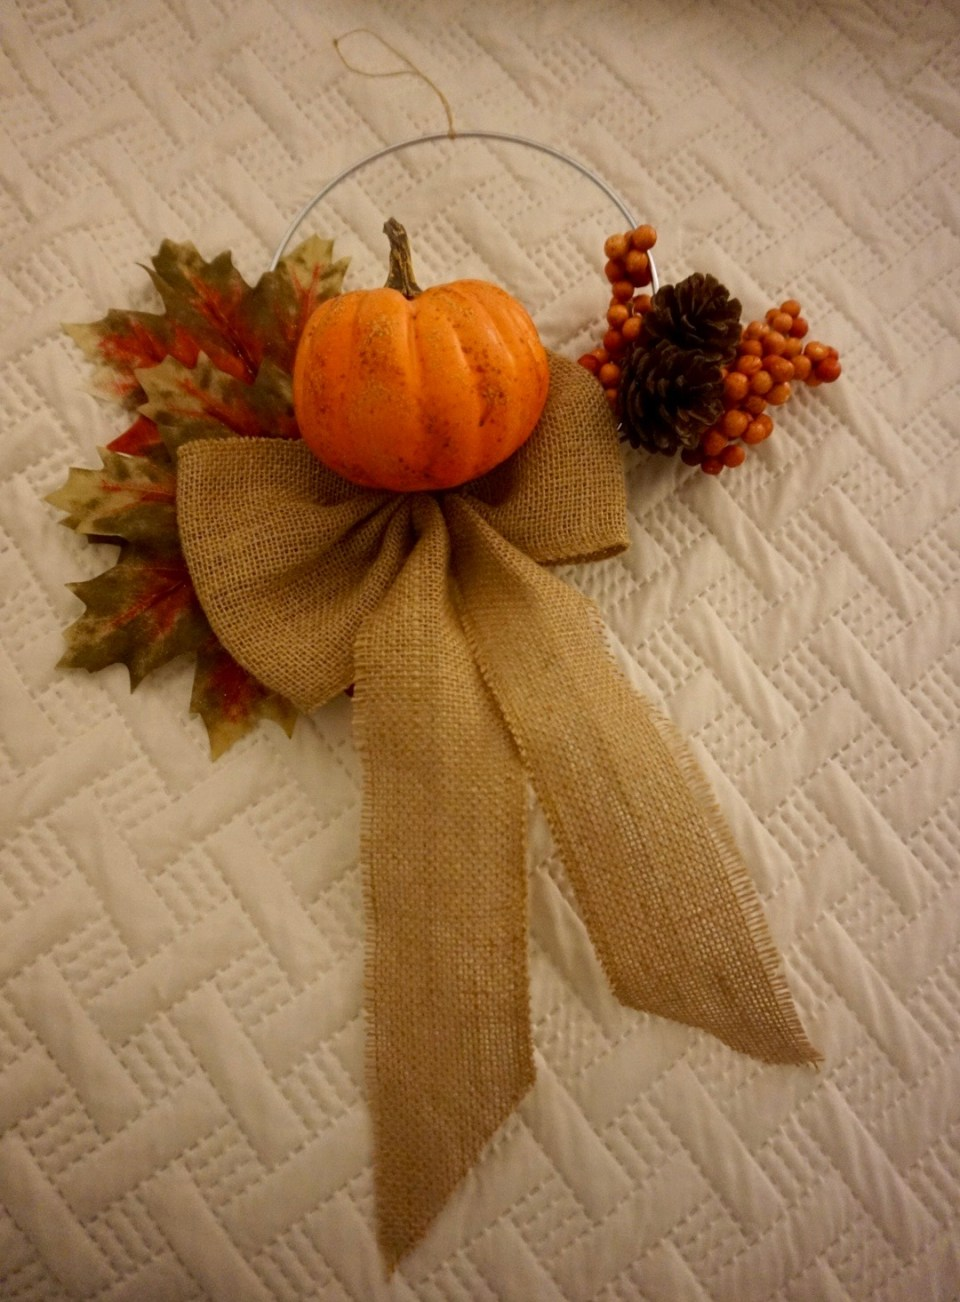 Simple Fall Wreath (with repurposed materials)